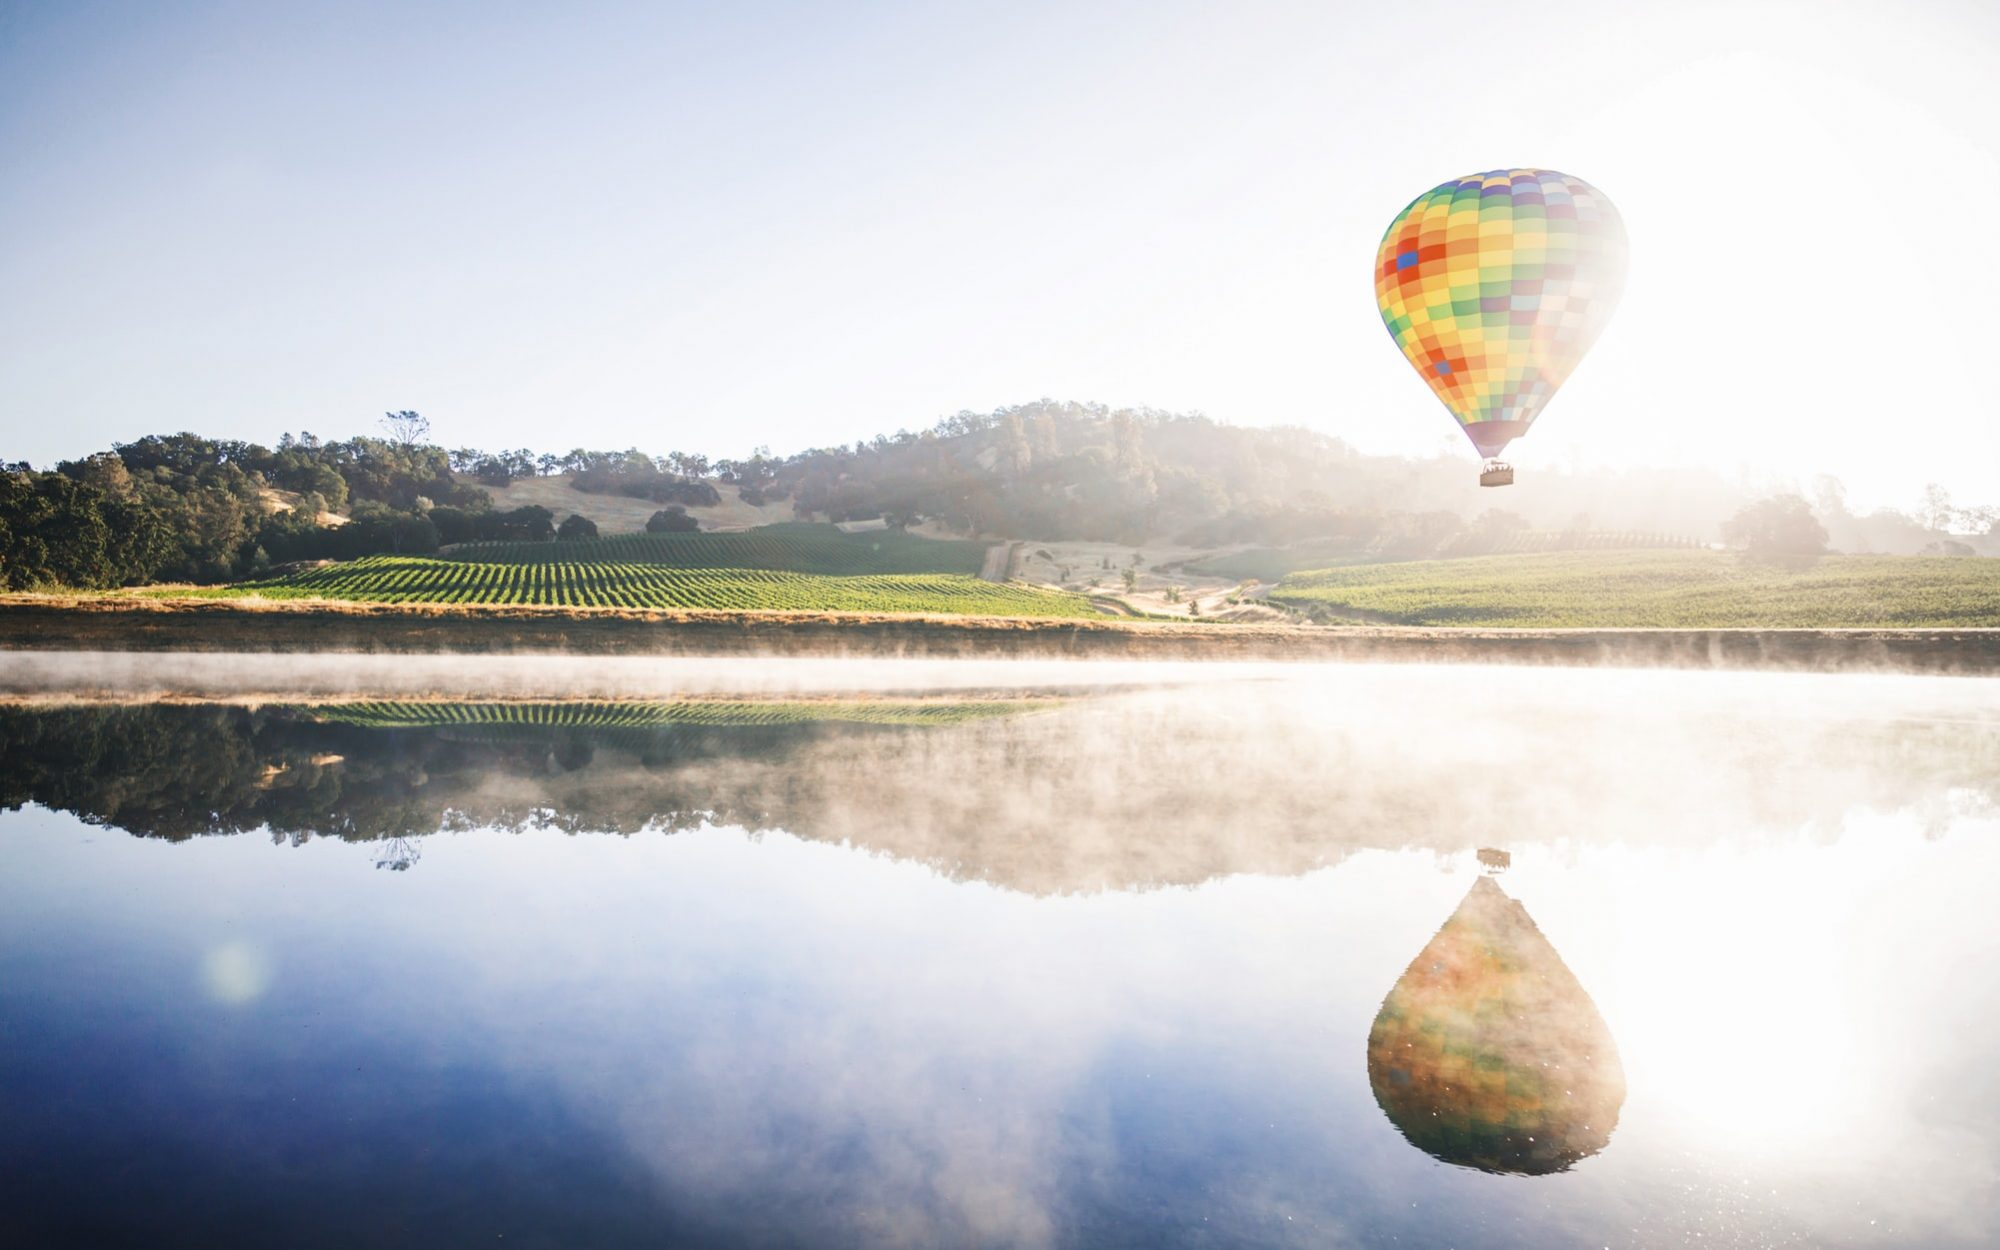 Napa Valley travel guide: see Napa from the sky in a hot air balloon